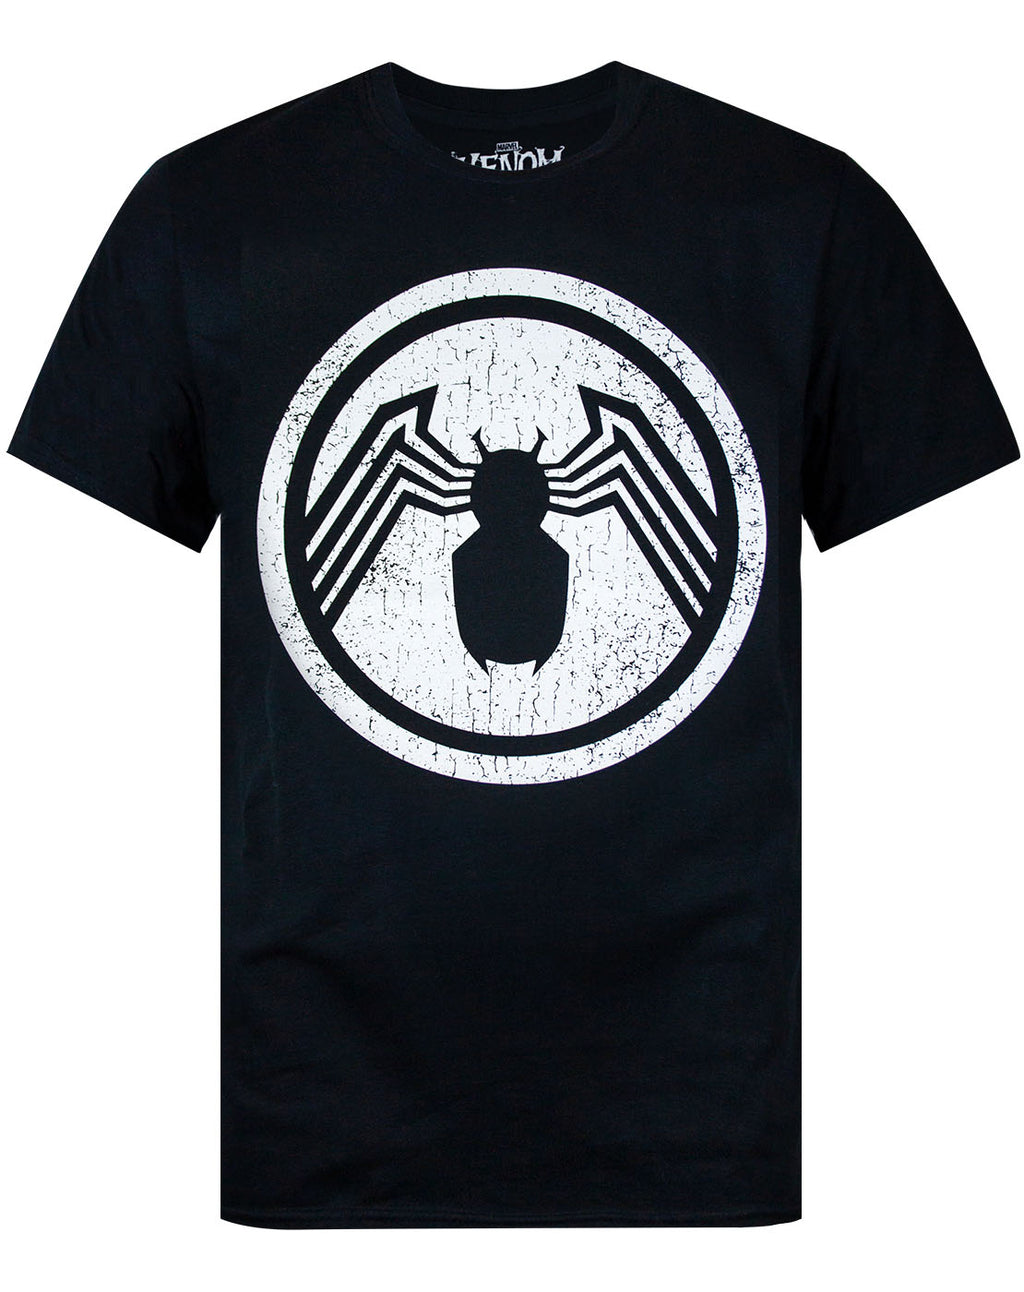 Marvel Venom Distressed Logo Men's T-Shirt